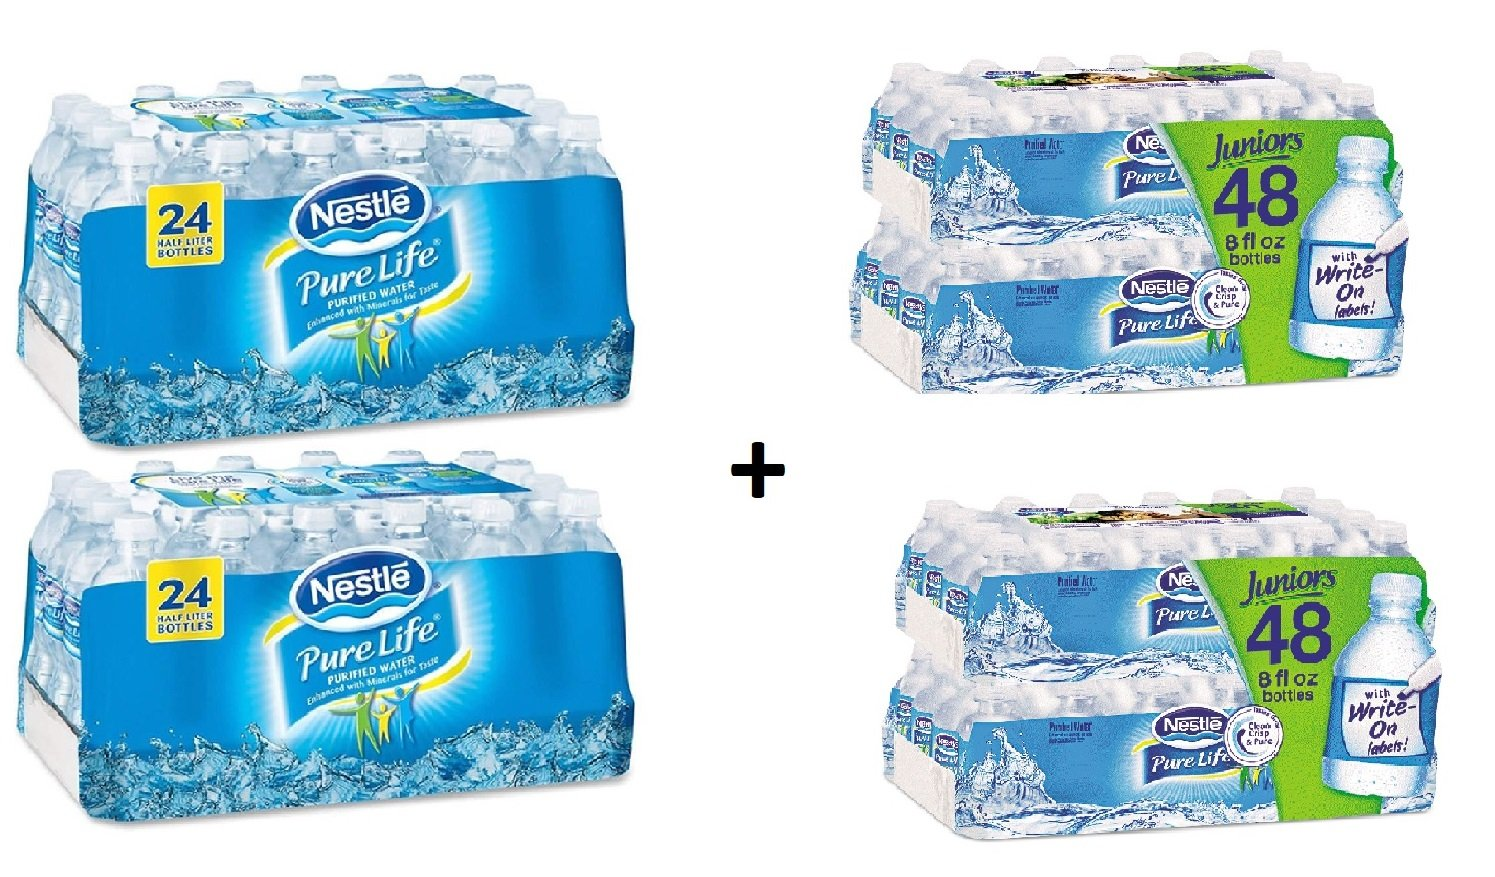 Nestle Pure Life Purified Water, 16.9 oz. Bottles, 2 Cases (24 Bottles) WITH Pure Life Purified Water, 8 oz Bottle, (48 Bottles) 2 Cases